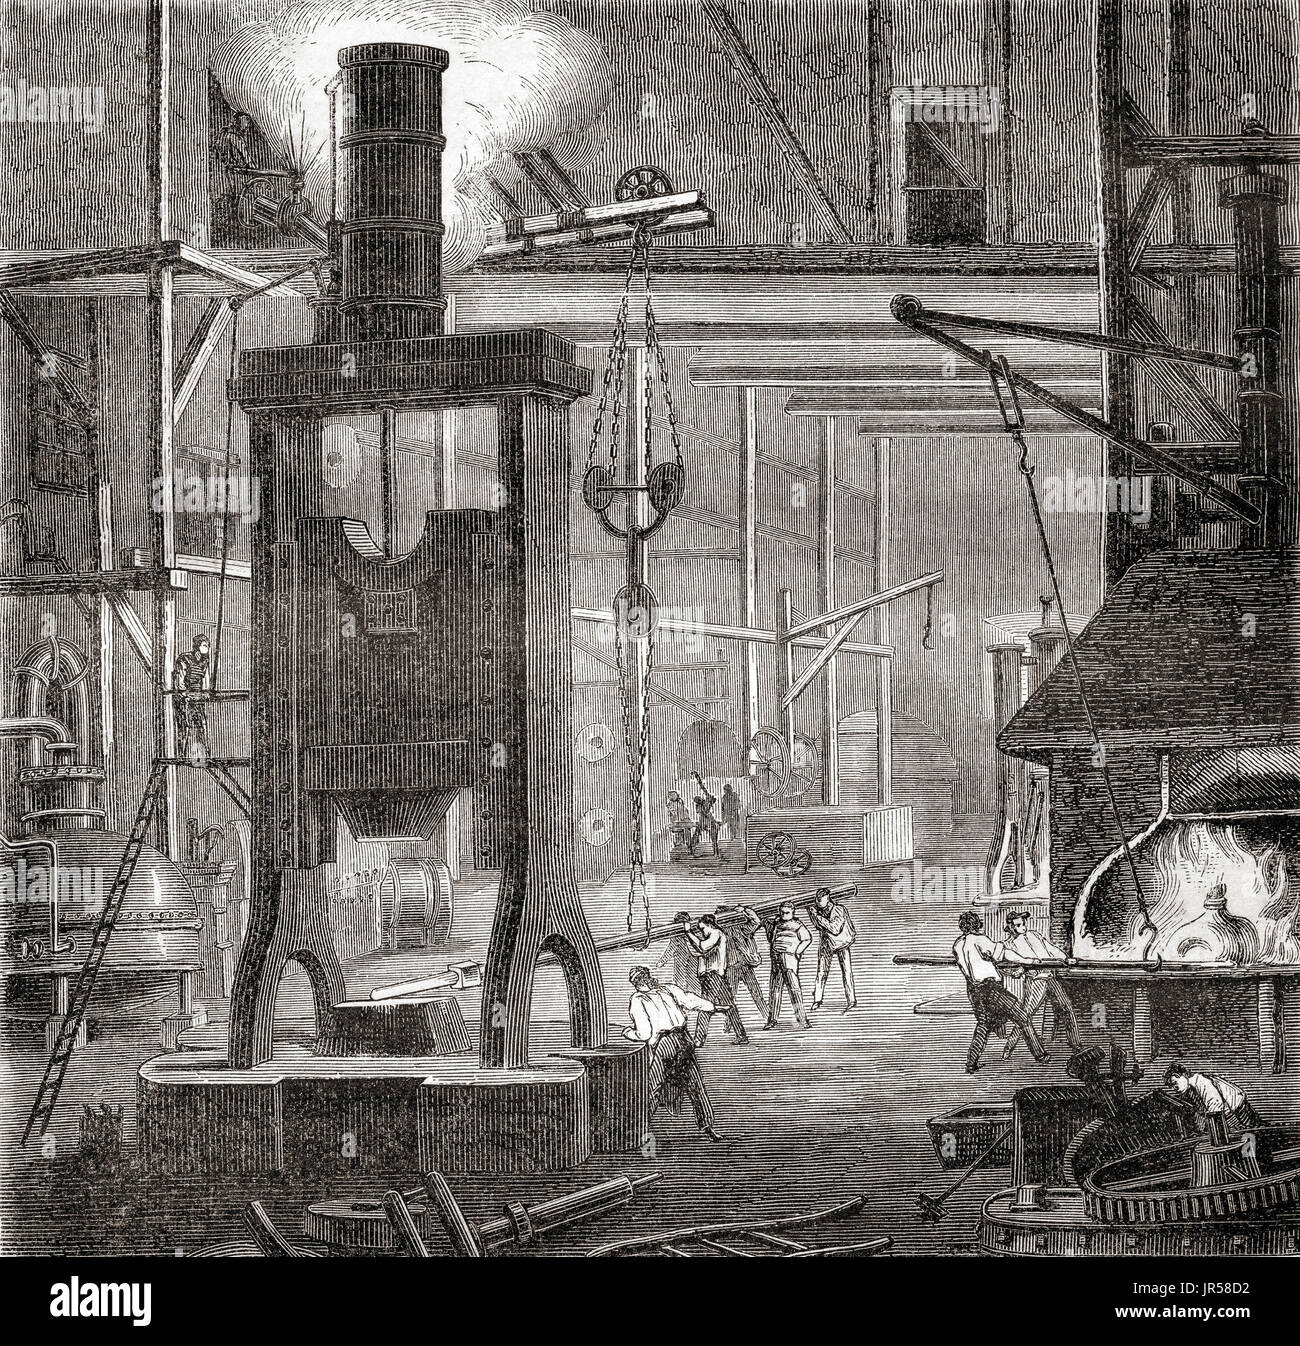 A 19th century steam hammer or drop hammer.  From Les Merveilles de la Science, published 1870. Stock Photo